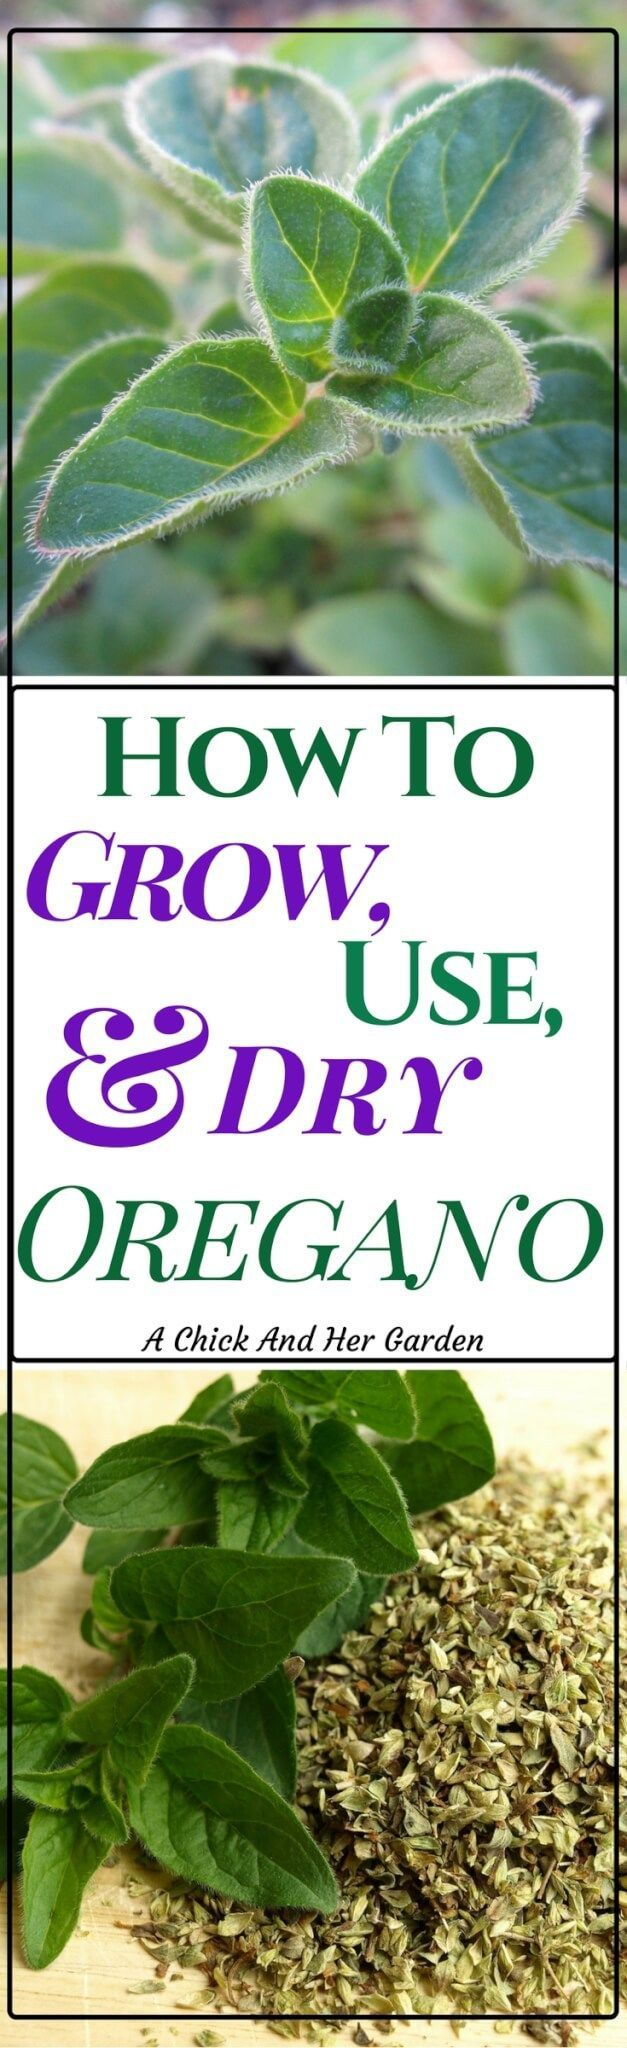 Oregano is not only an awesome addition to our food, but also has baffling health benefits! Check out how to grow oregano and why you should! #herbgarden #gardening #growingherbs #foodpreservation